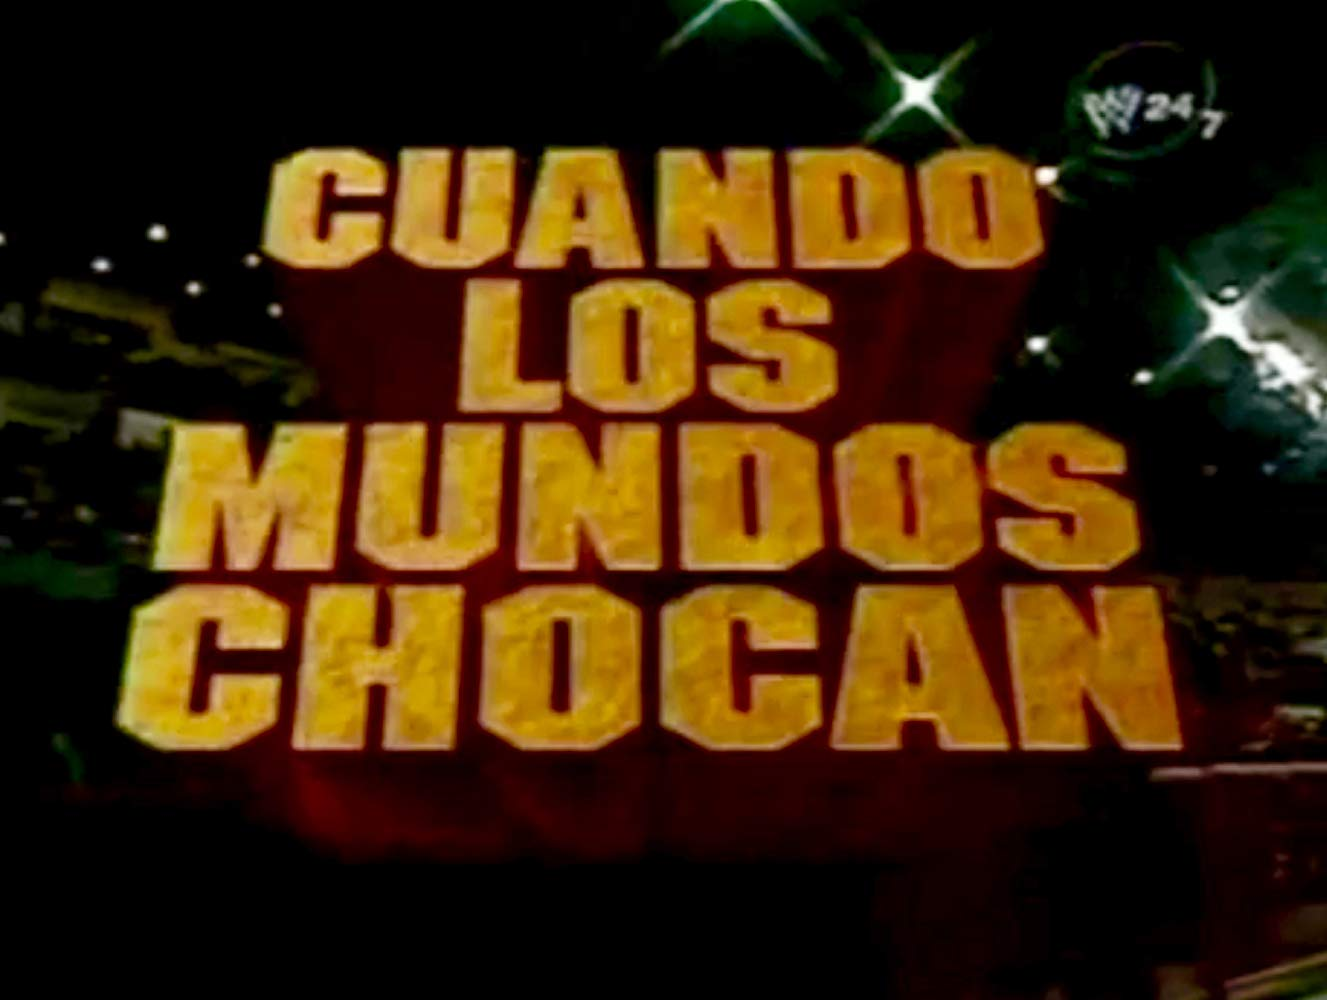 When worlds collide — Cuando los mundos chocan